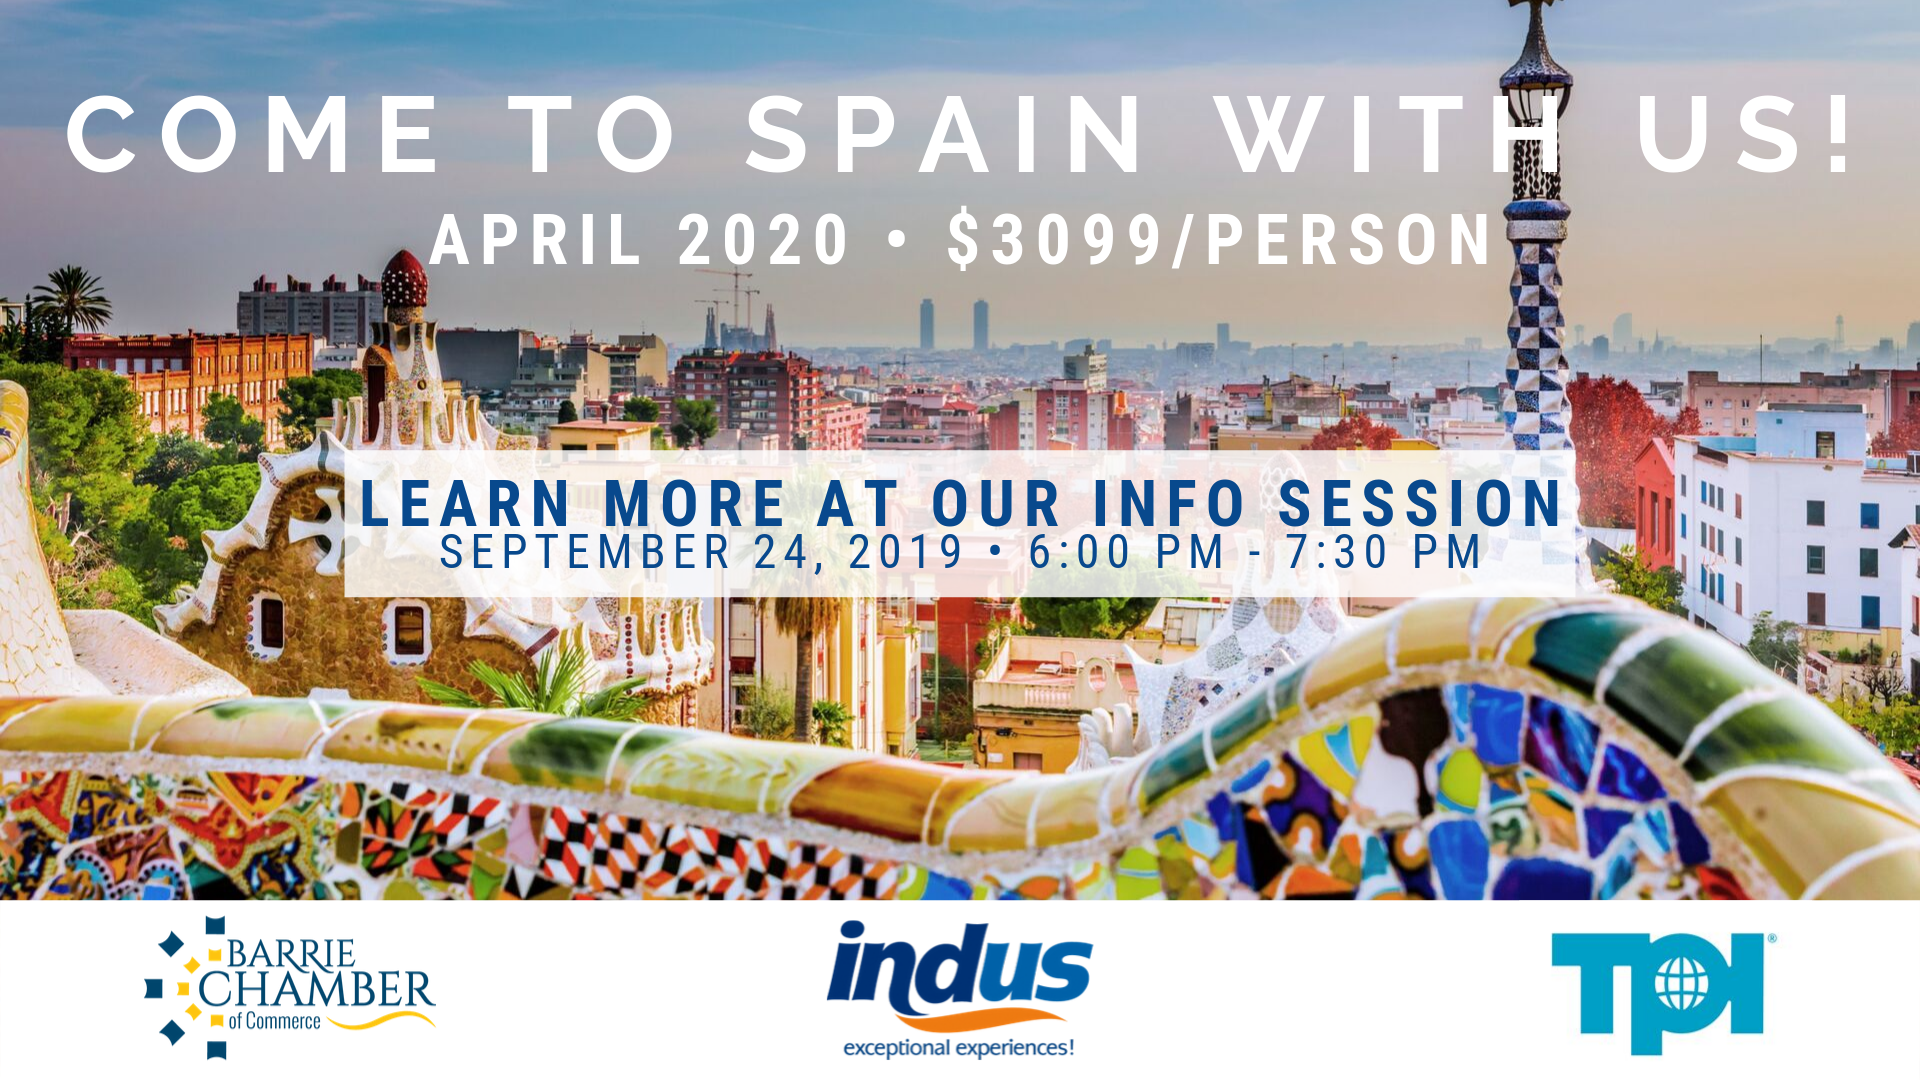 Come to Spain with us!